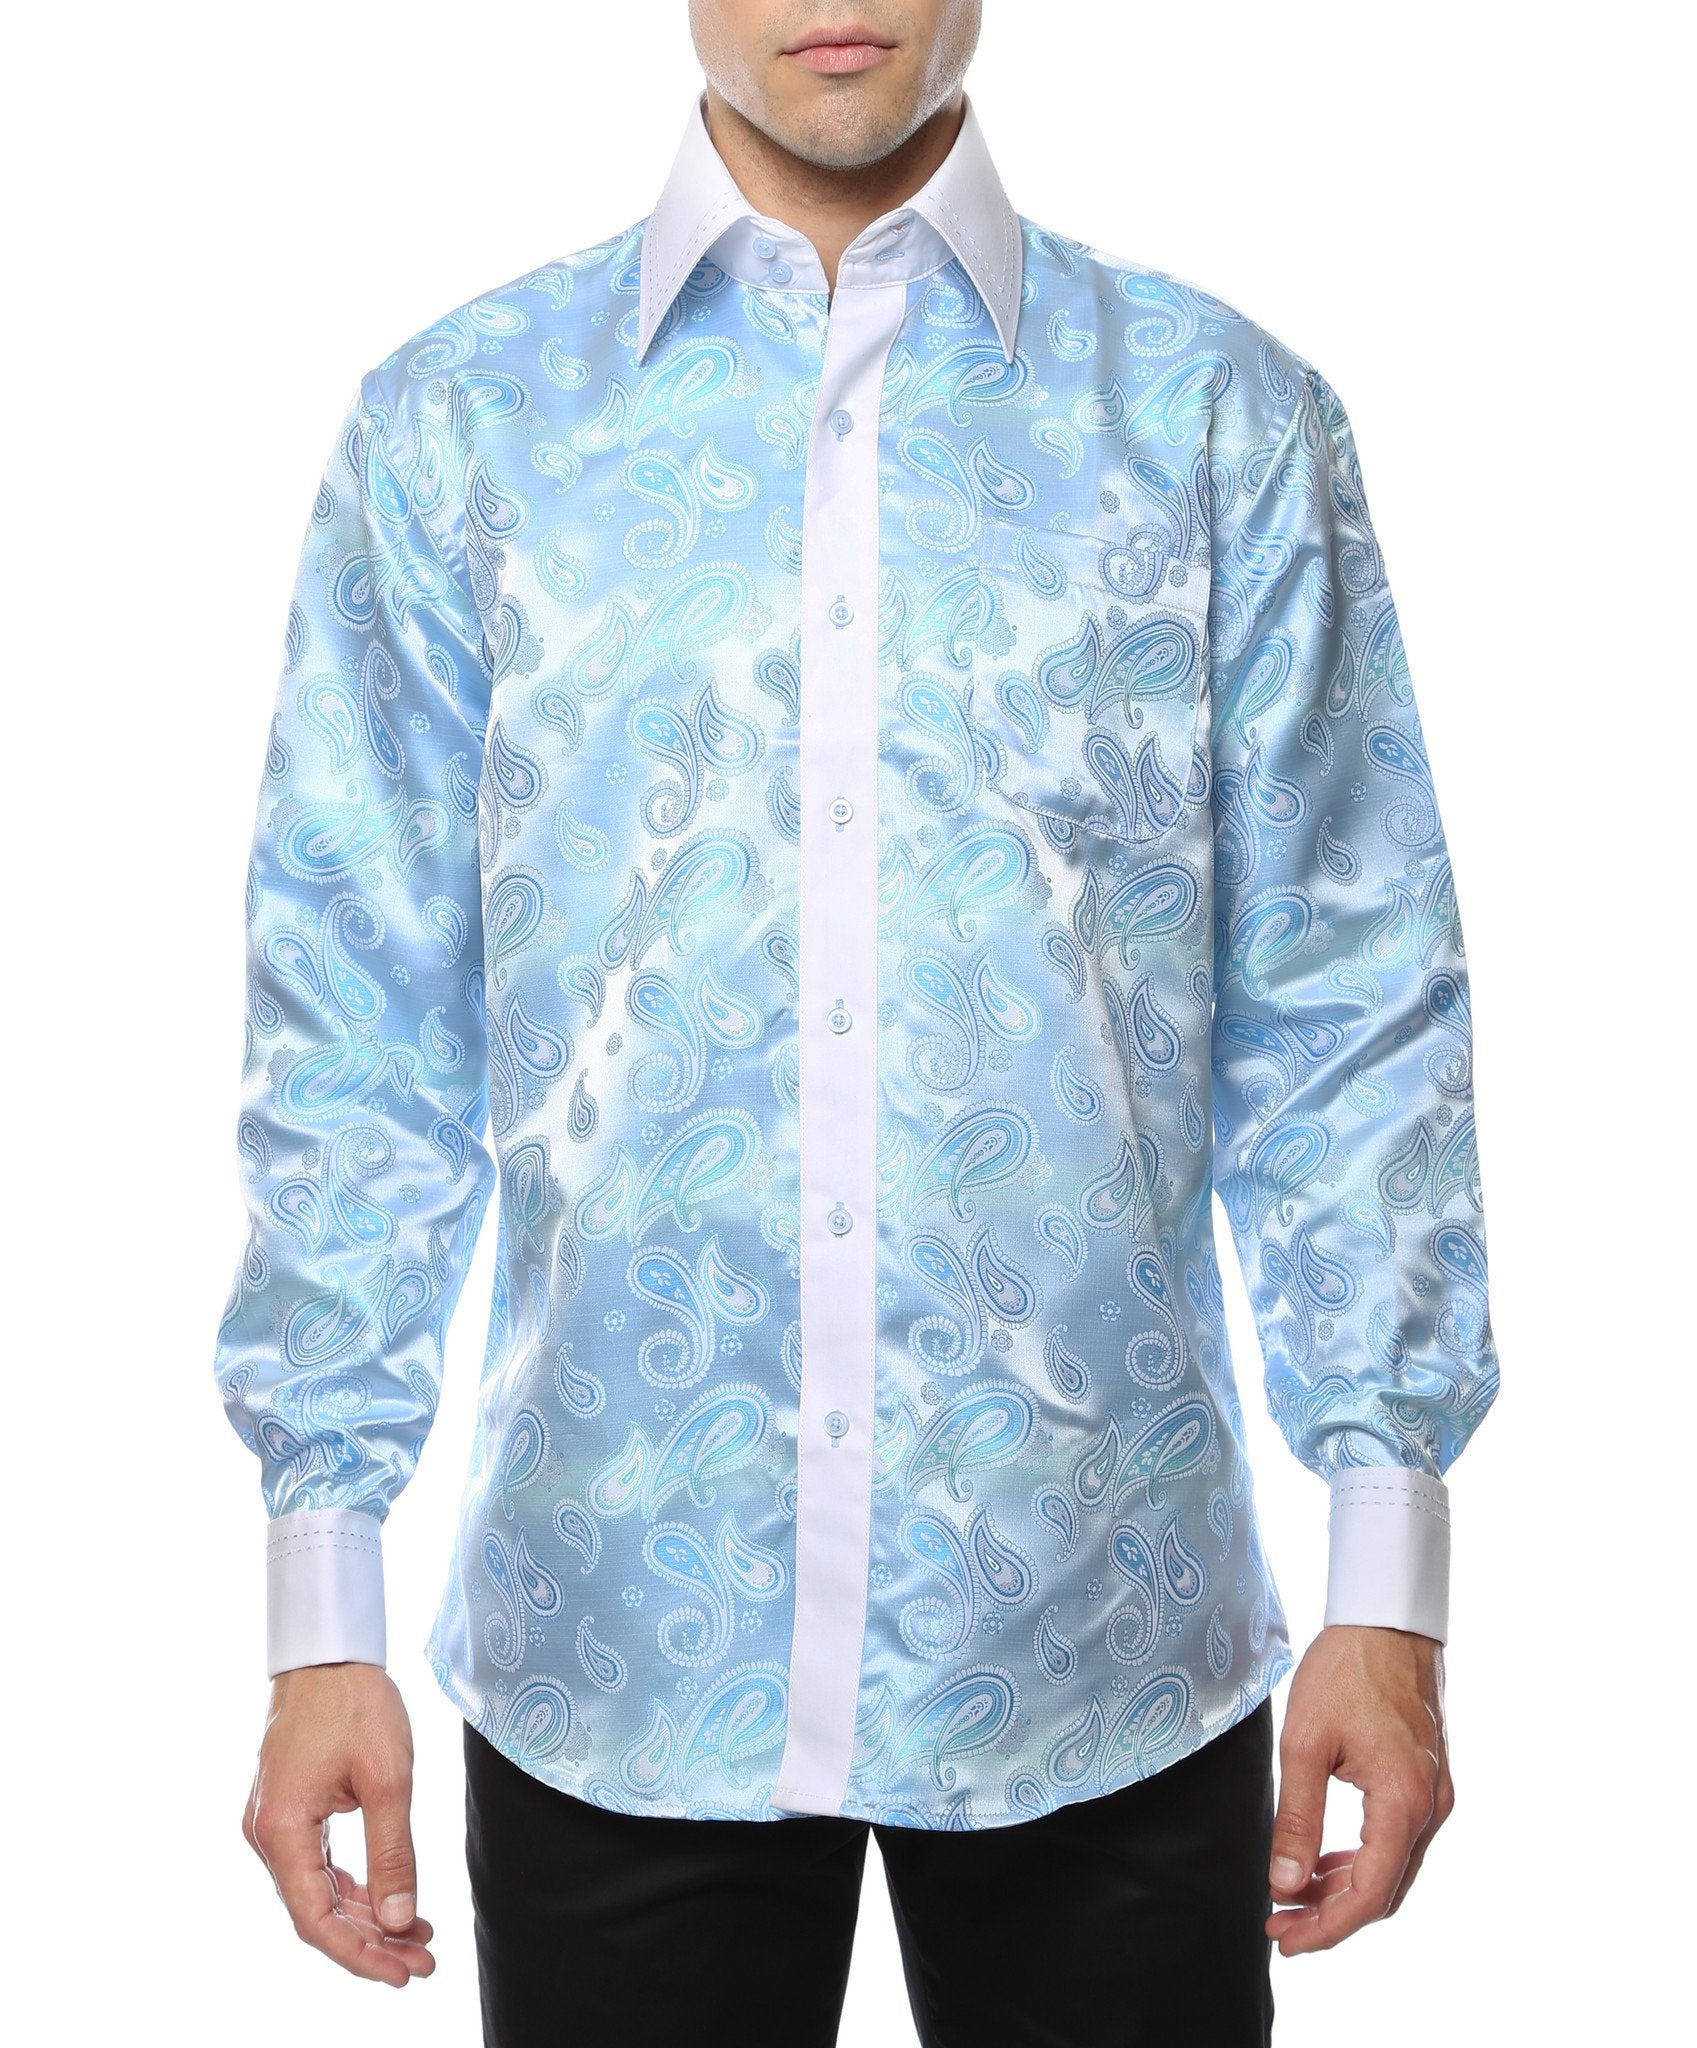 Ferrecci Men's Satine Hi-1025 Turquise Paisley Button Down Dress Shirt - Giorgio's Menswear